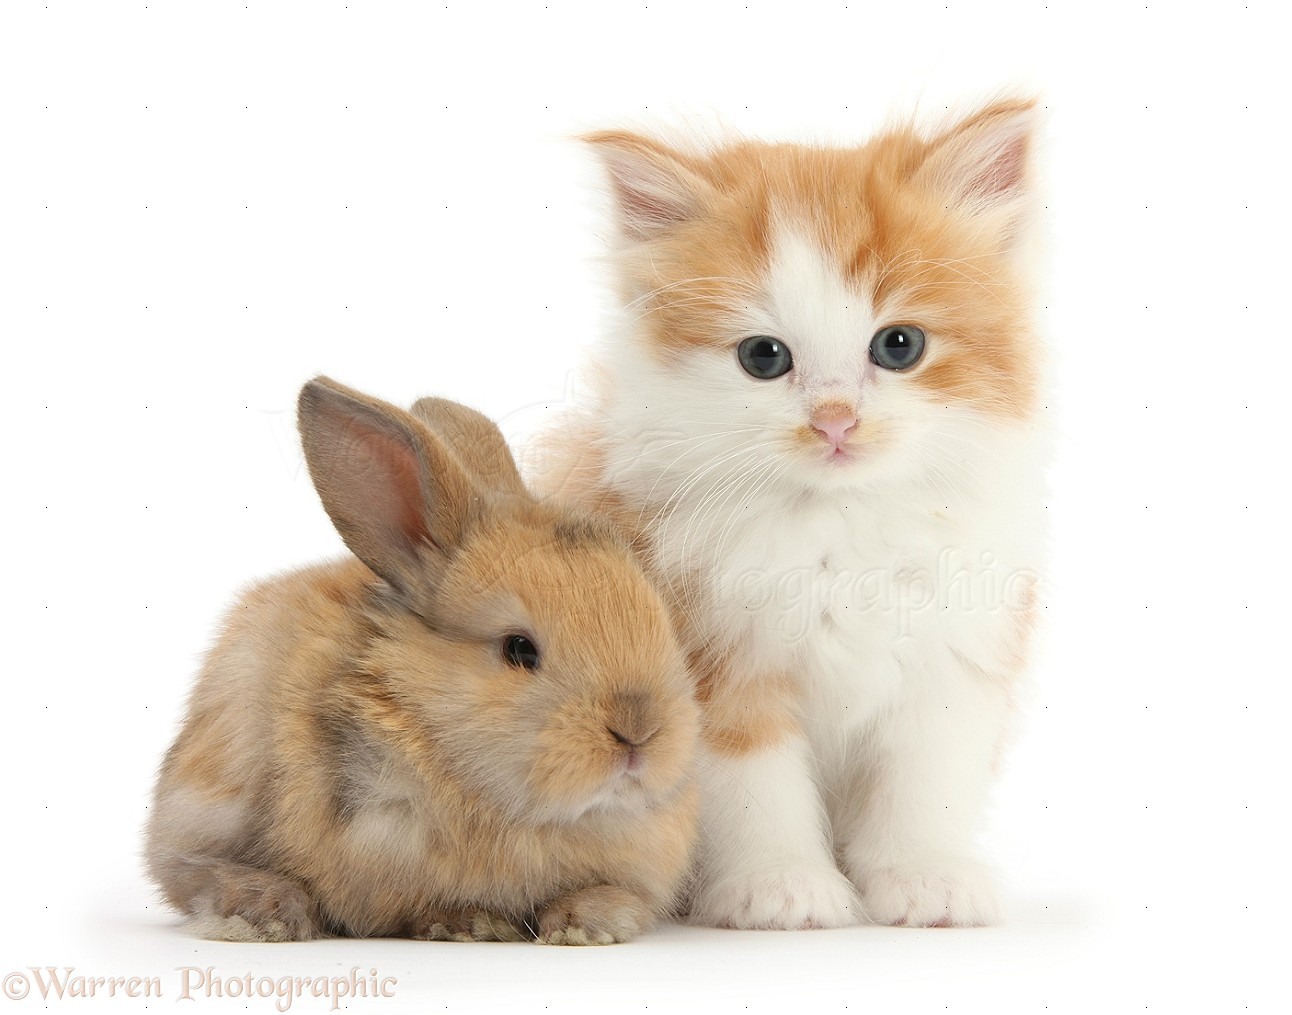 Pets Ginger and white kitten with a baby rabbit photo WP